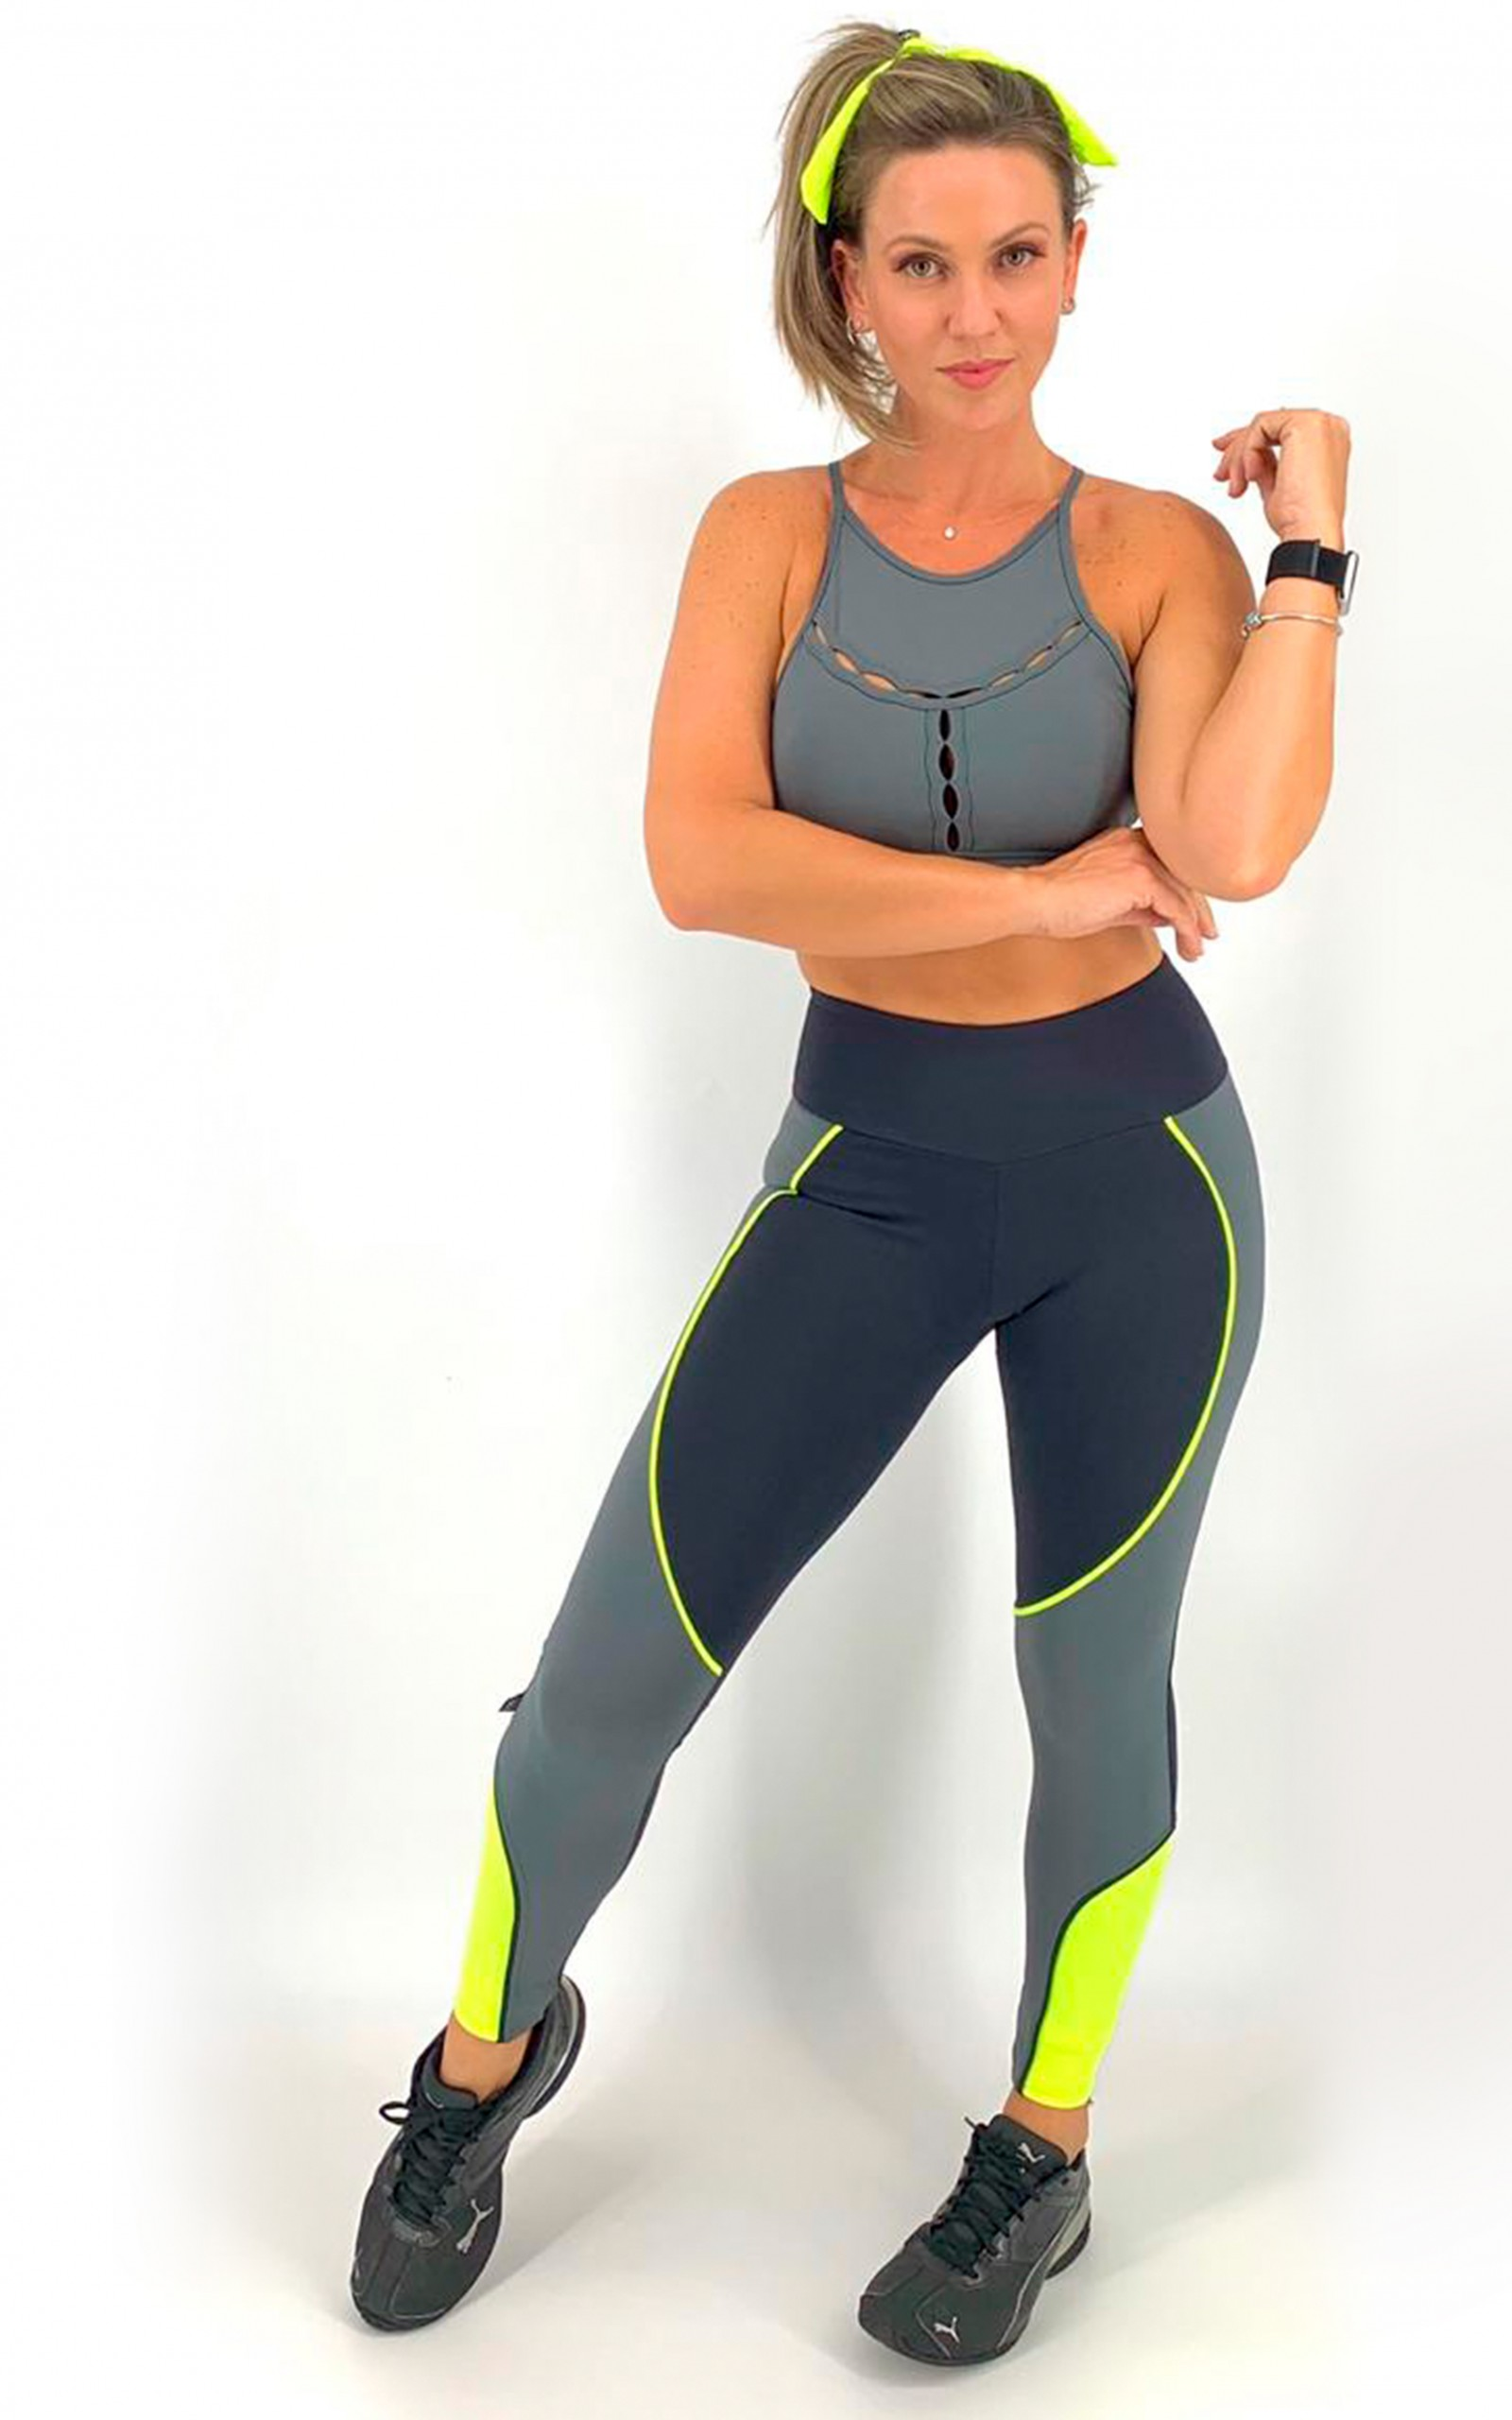 Legging Circle Chumbo, Coleção Move Your Body - NKT Fitwear Moda Fitness